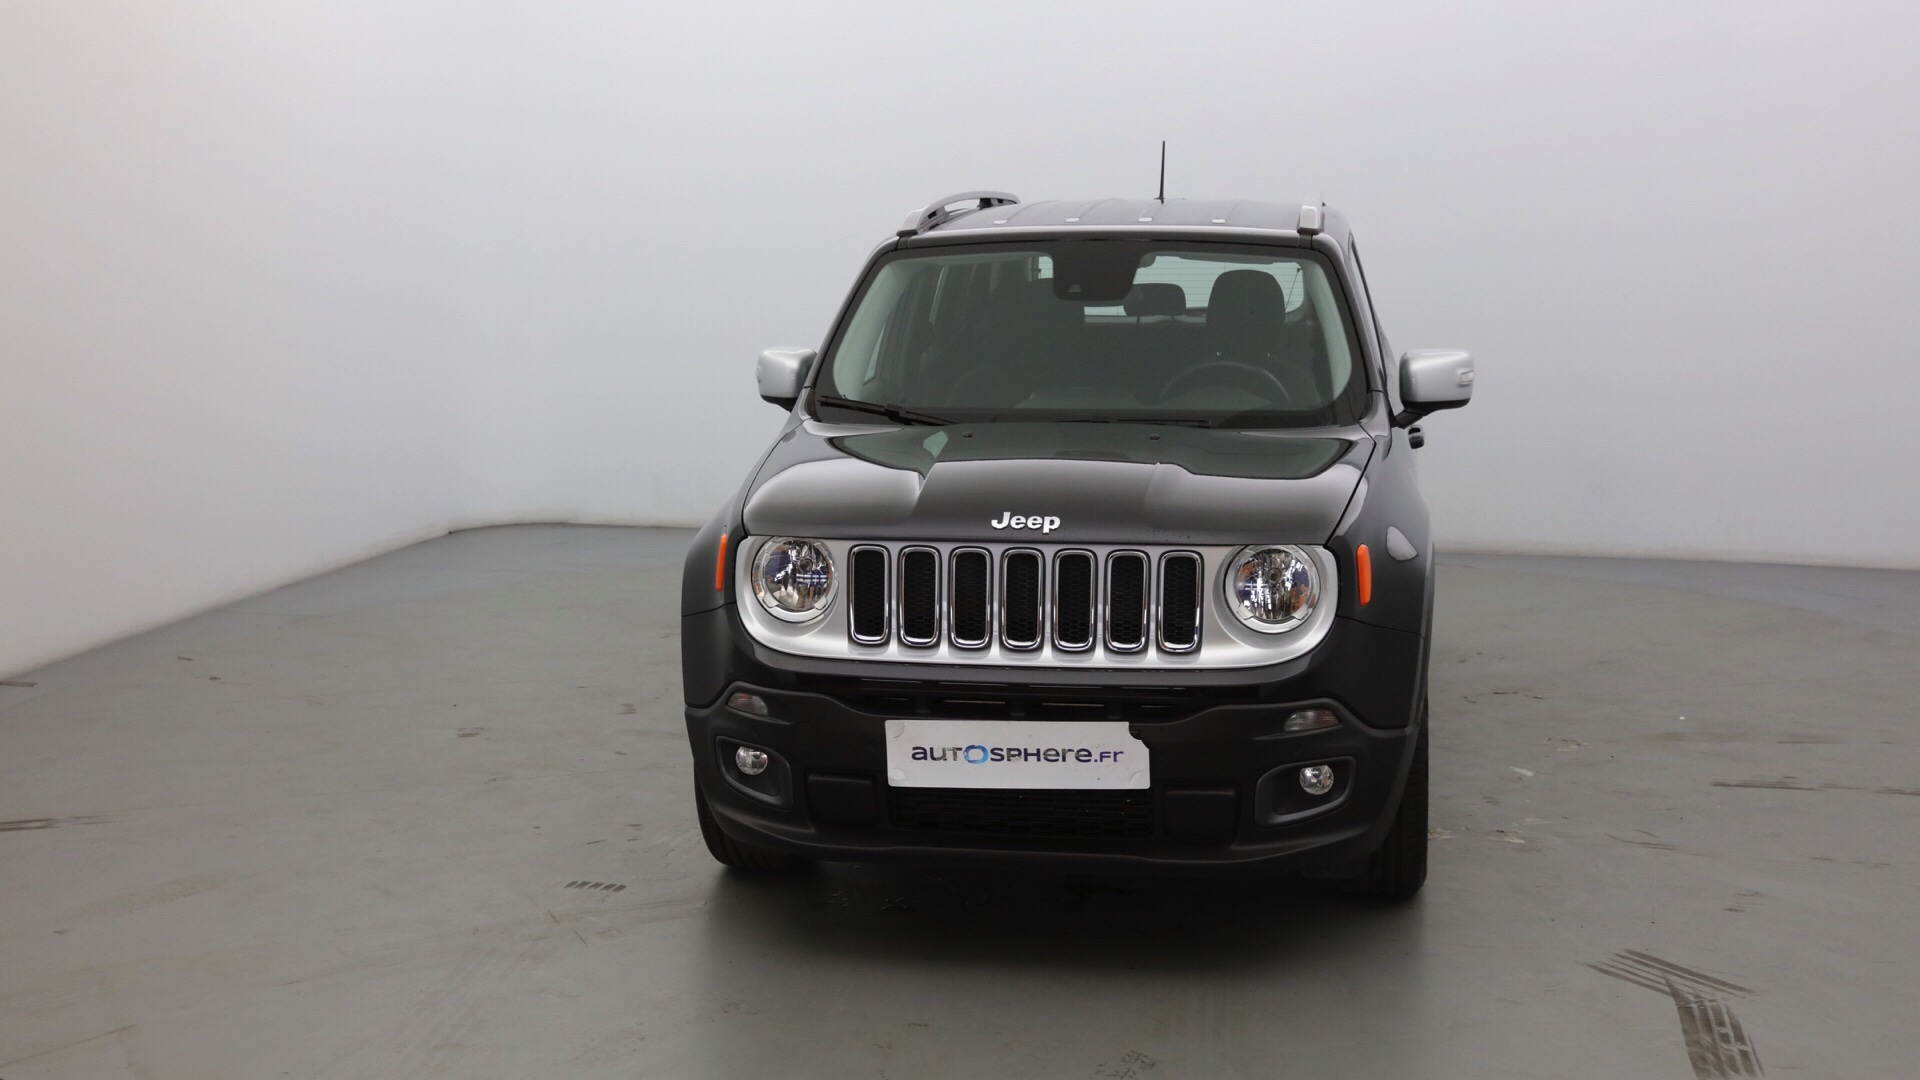 JEEP RENEGADE 1.4 MULTIAIR S&S 140CH LIMITED BVRD6 - Miniature 2